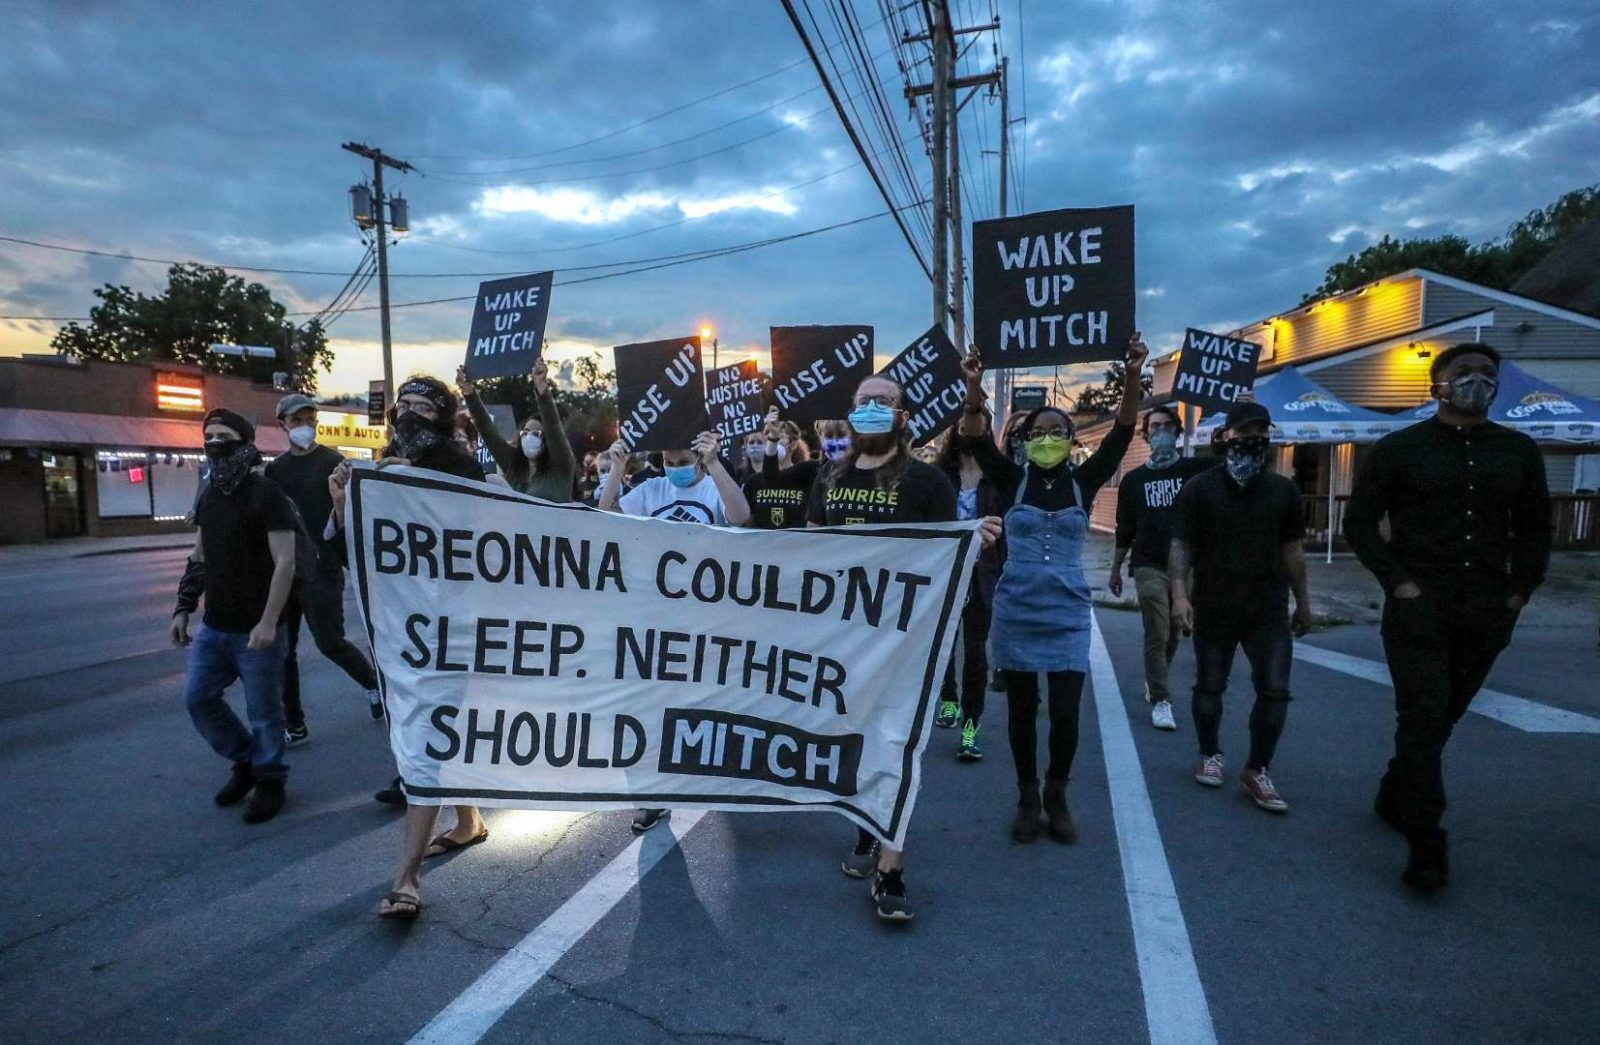 "Sunrise activists occupy the street as they march towards Mitch McConnell's KY house as the sun is rising. They're holding a large sign saying ""Breonna Couldn't Sleep. Neither Should Mitch""."